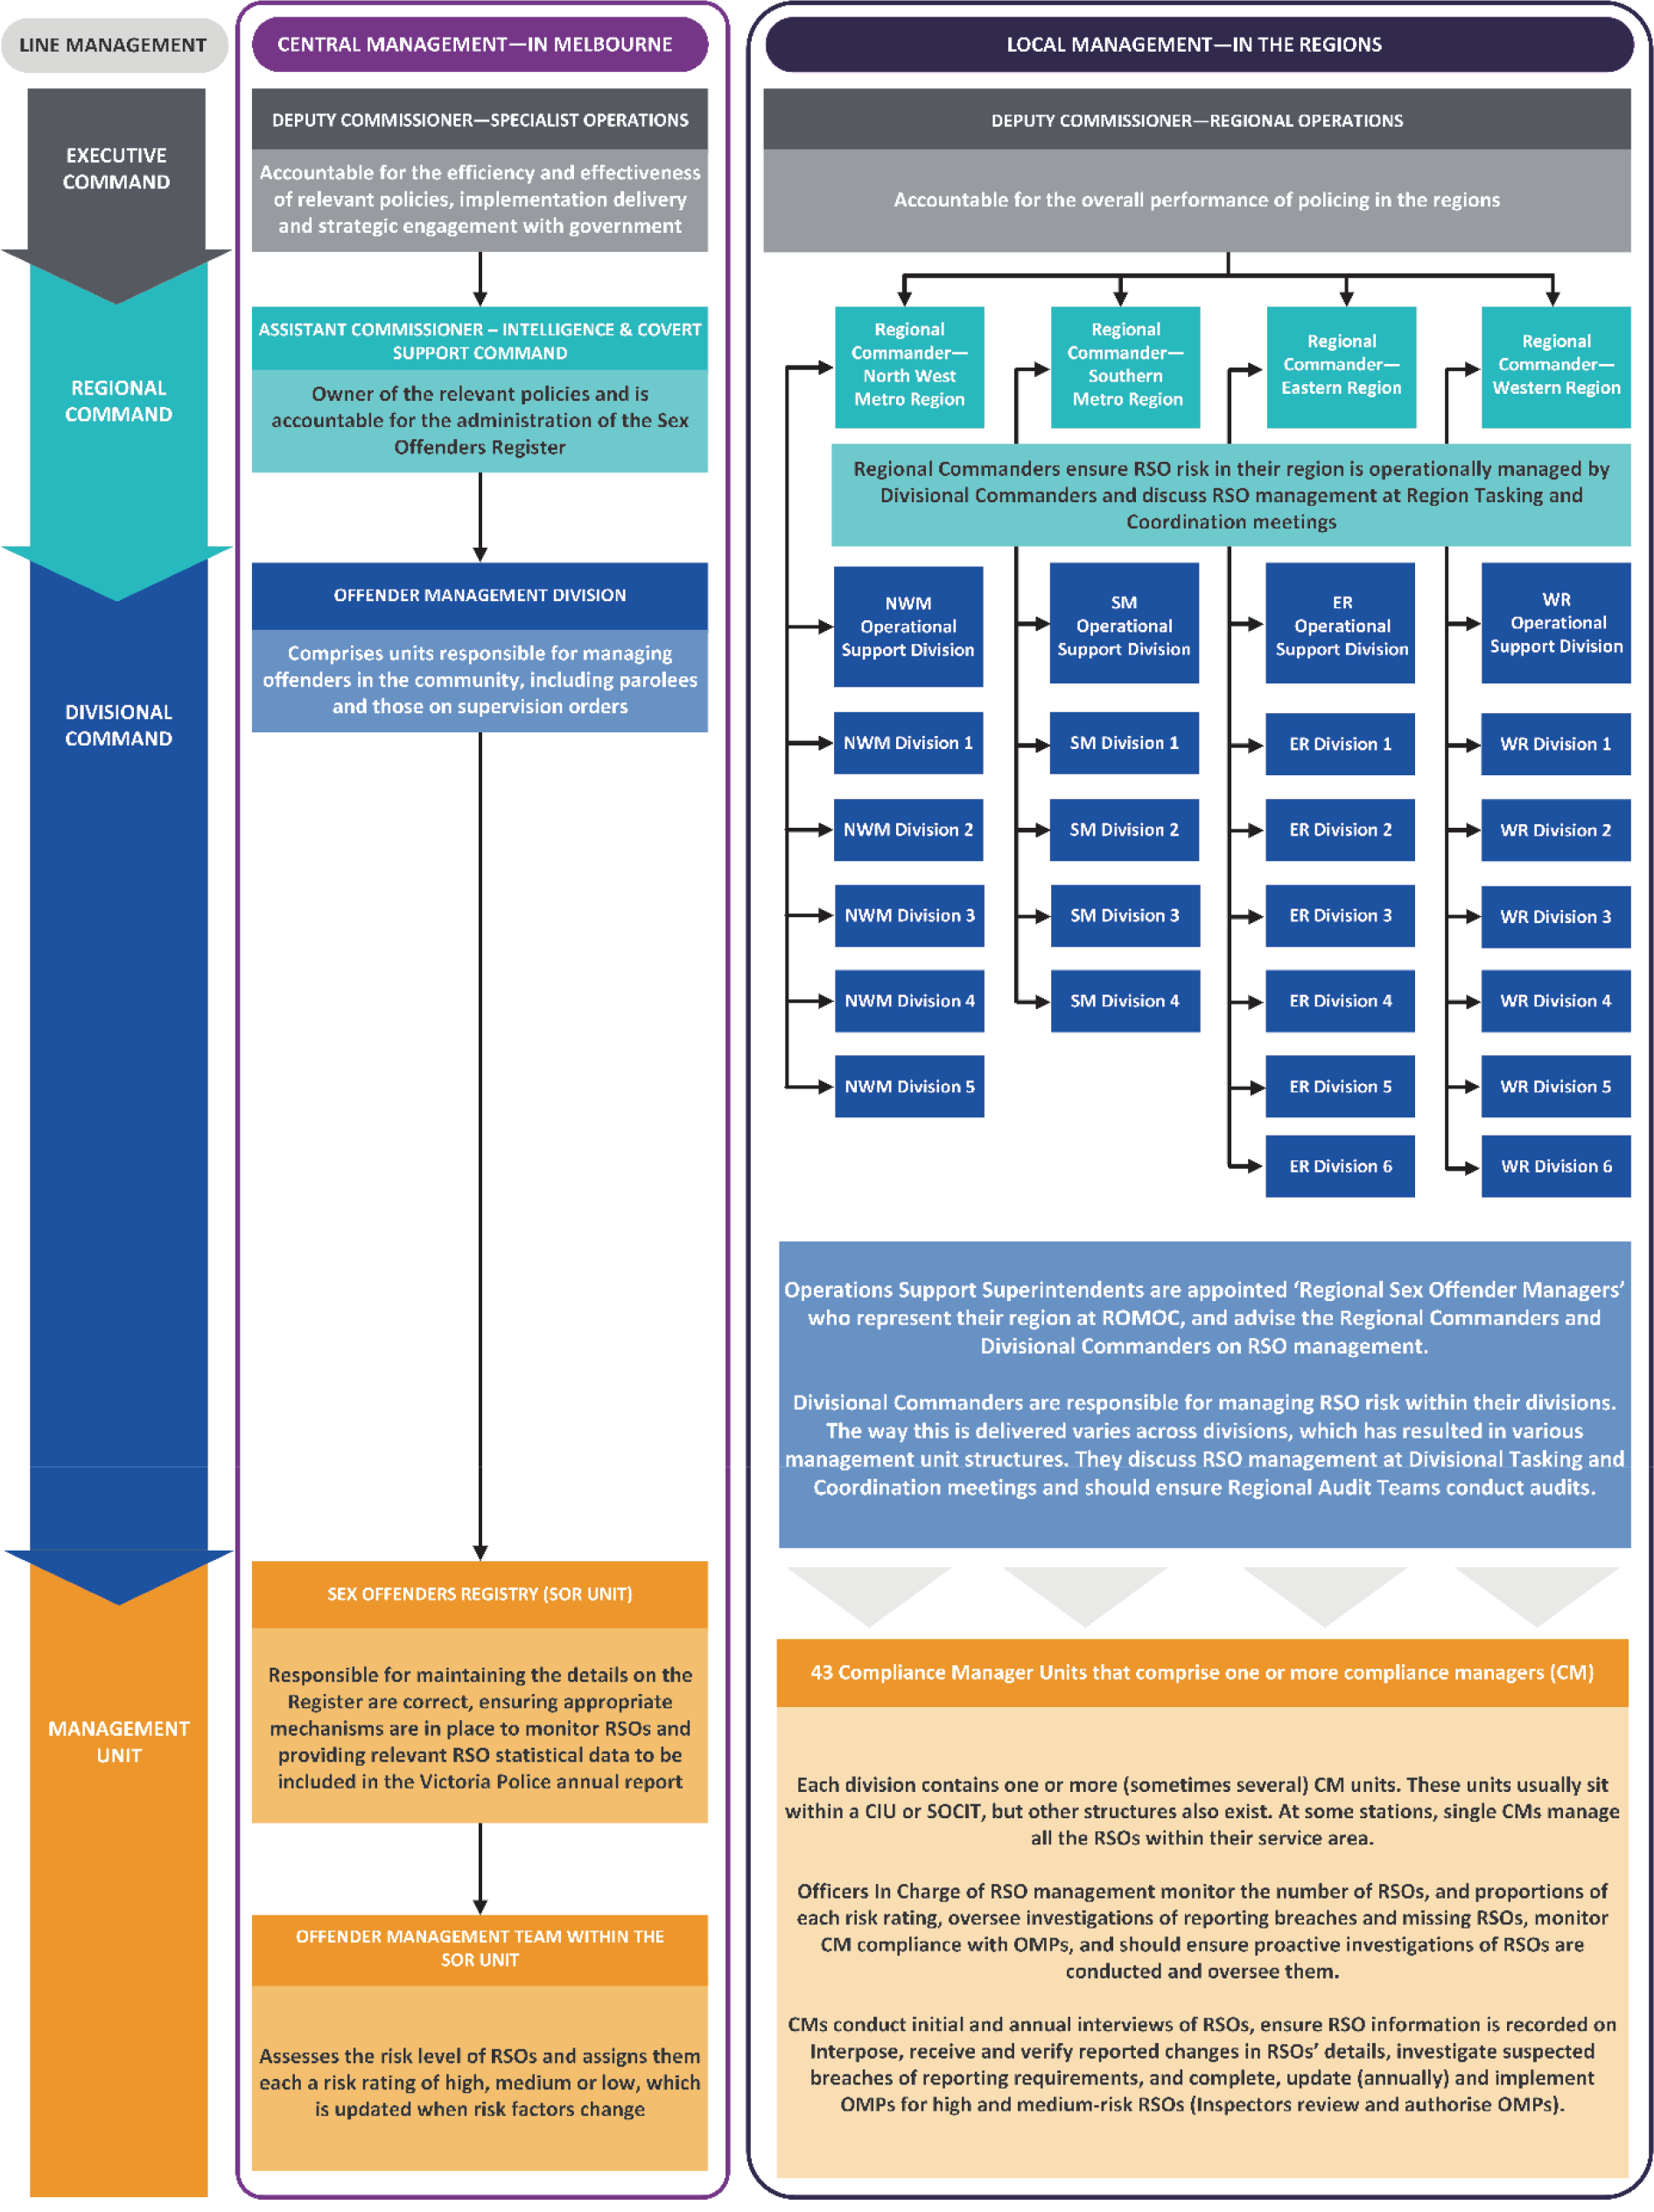 Figure 1C shows RSO management and governance responsibilities across Victoria Police